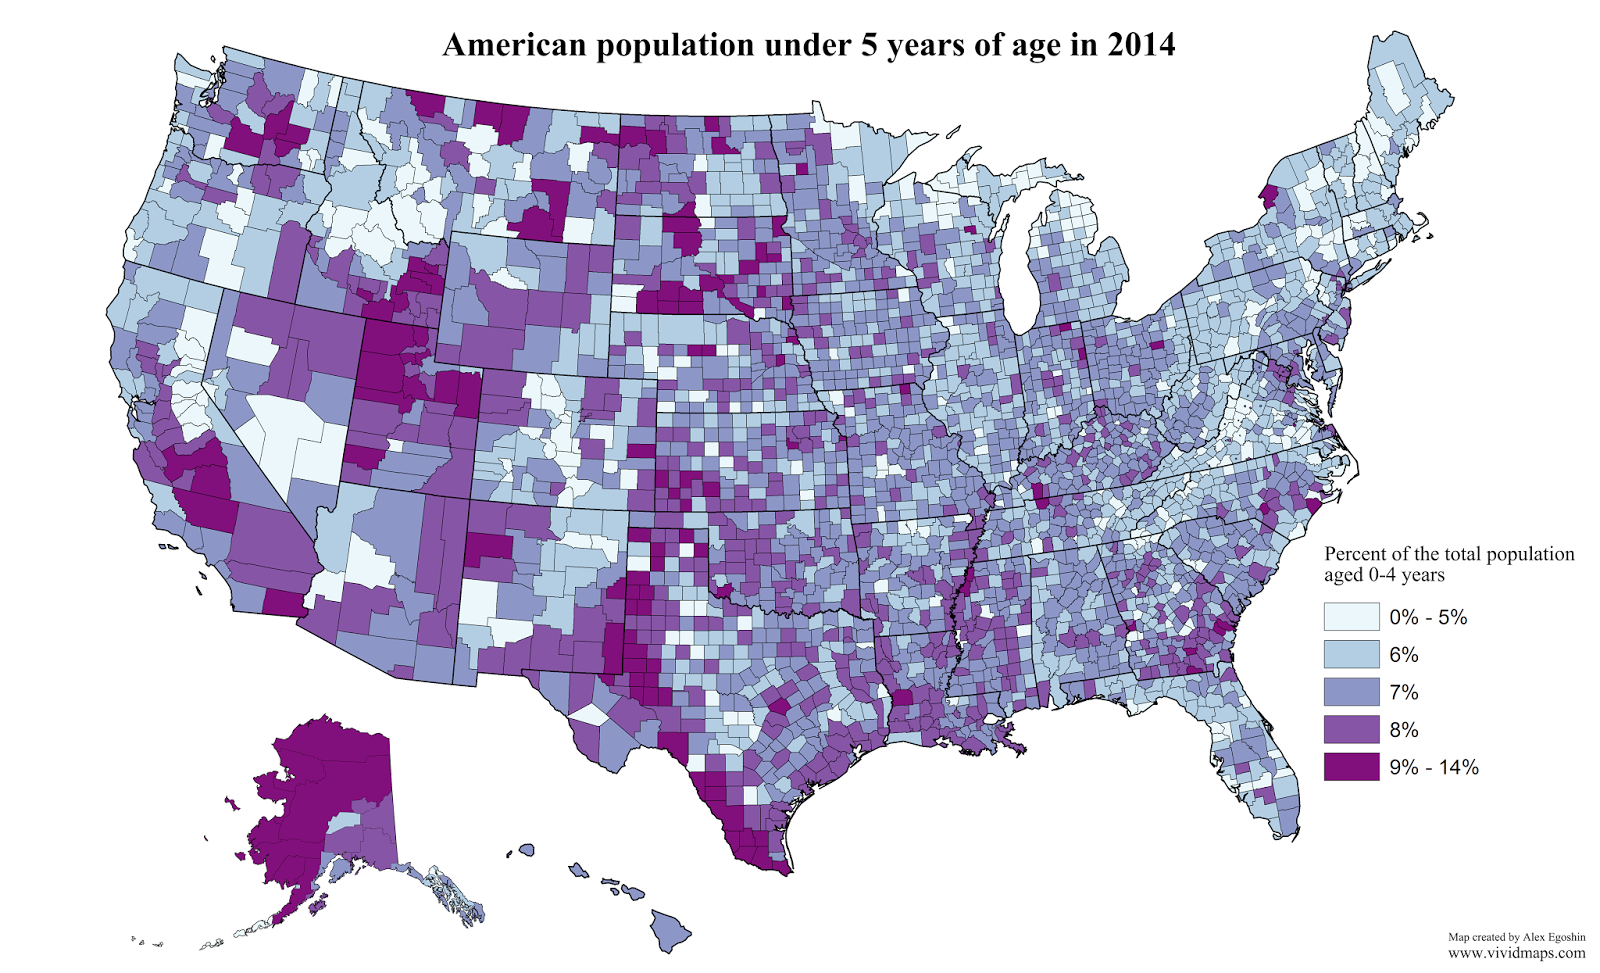 American population under 5 years of age in 2014